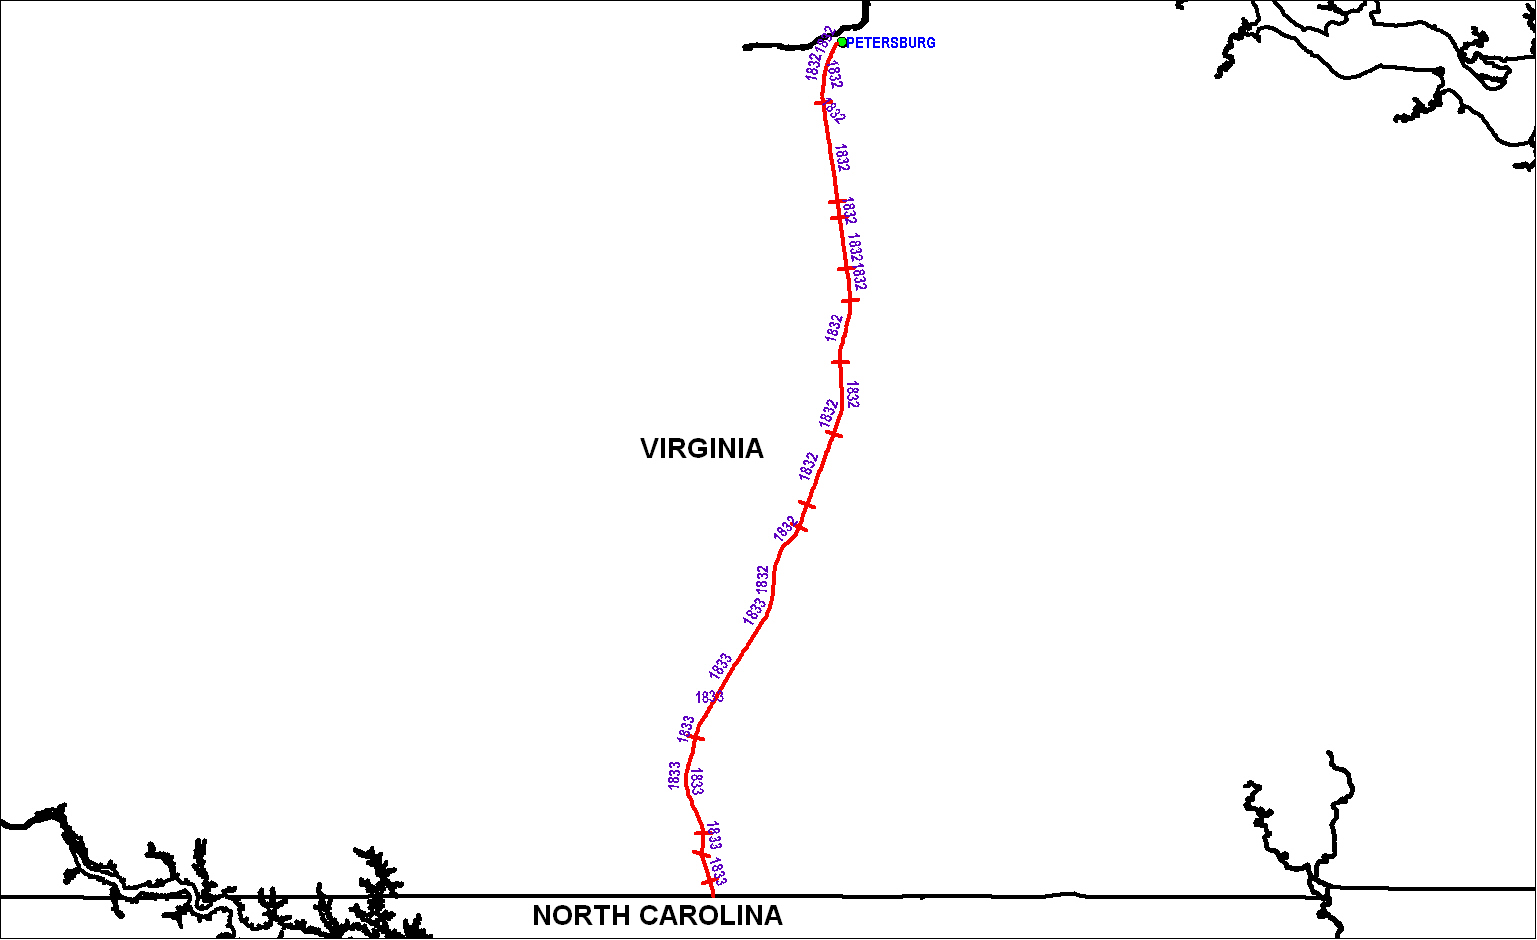 Petersburg Railroad (VA) map as of 1850